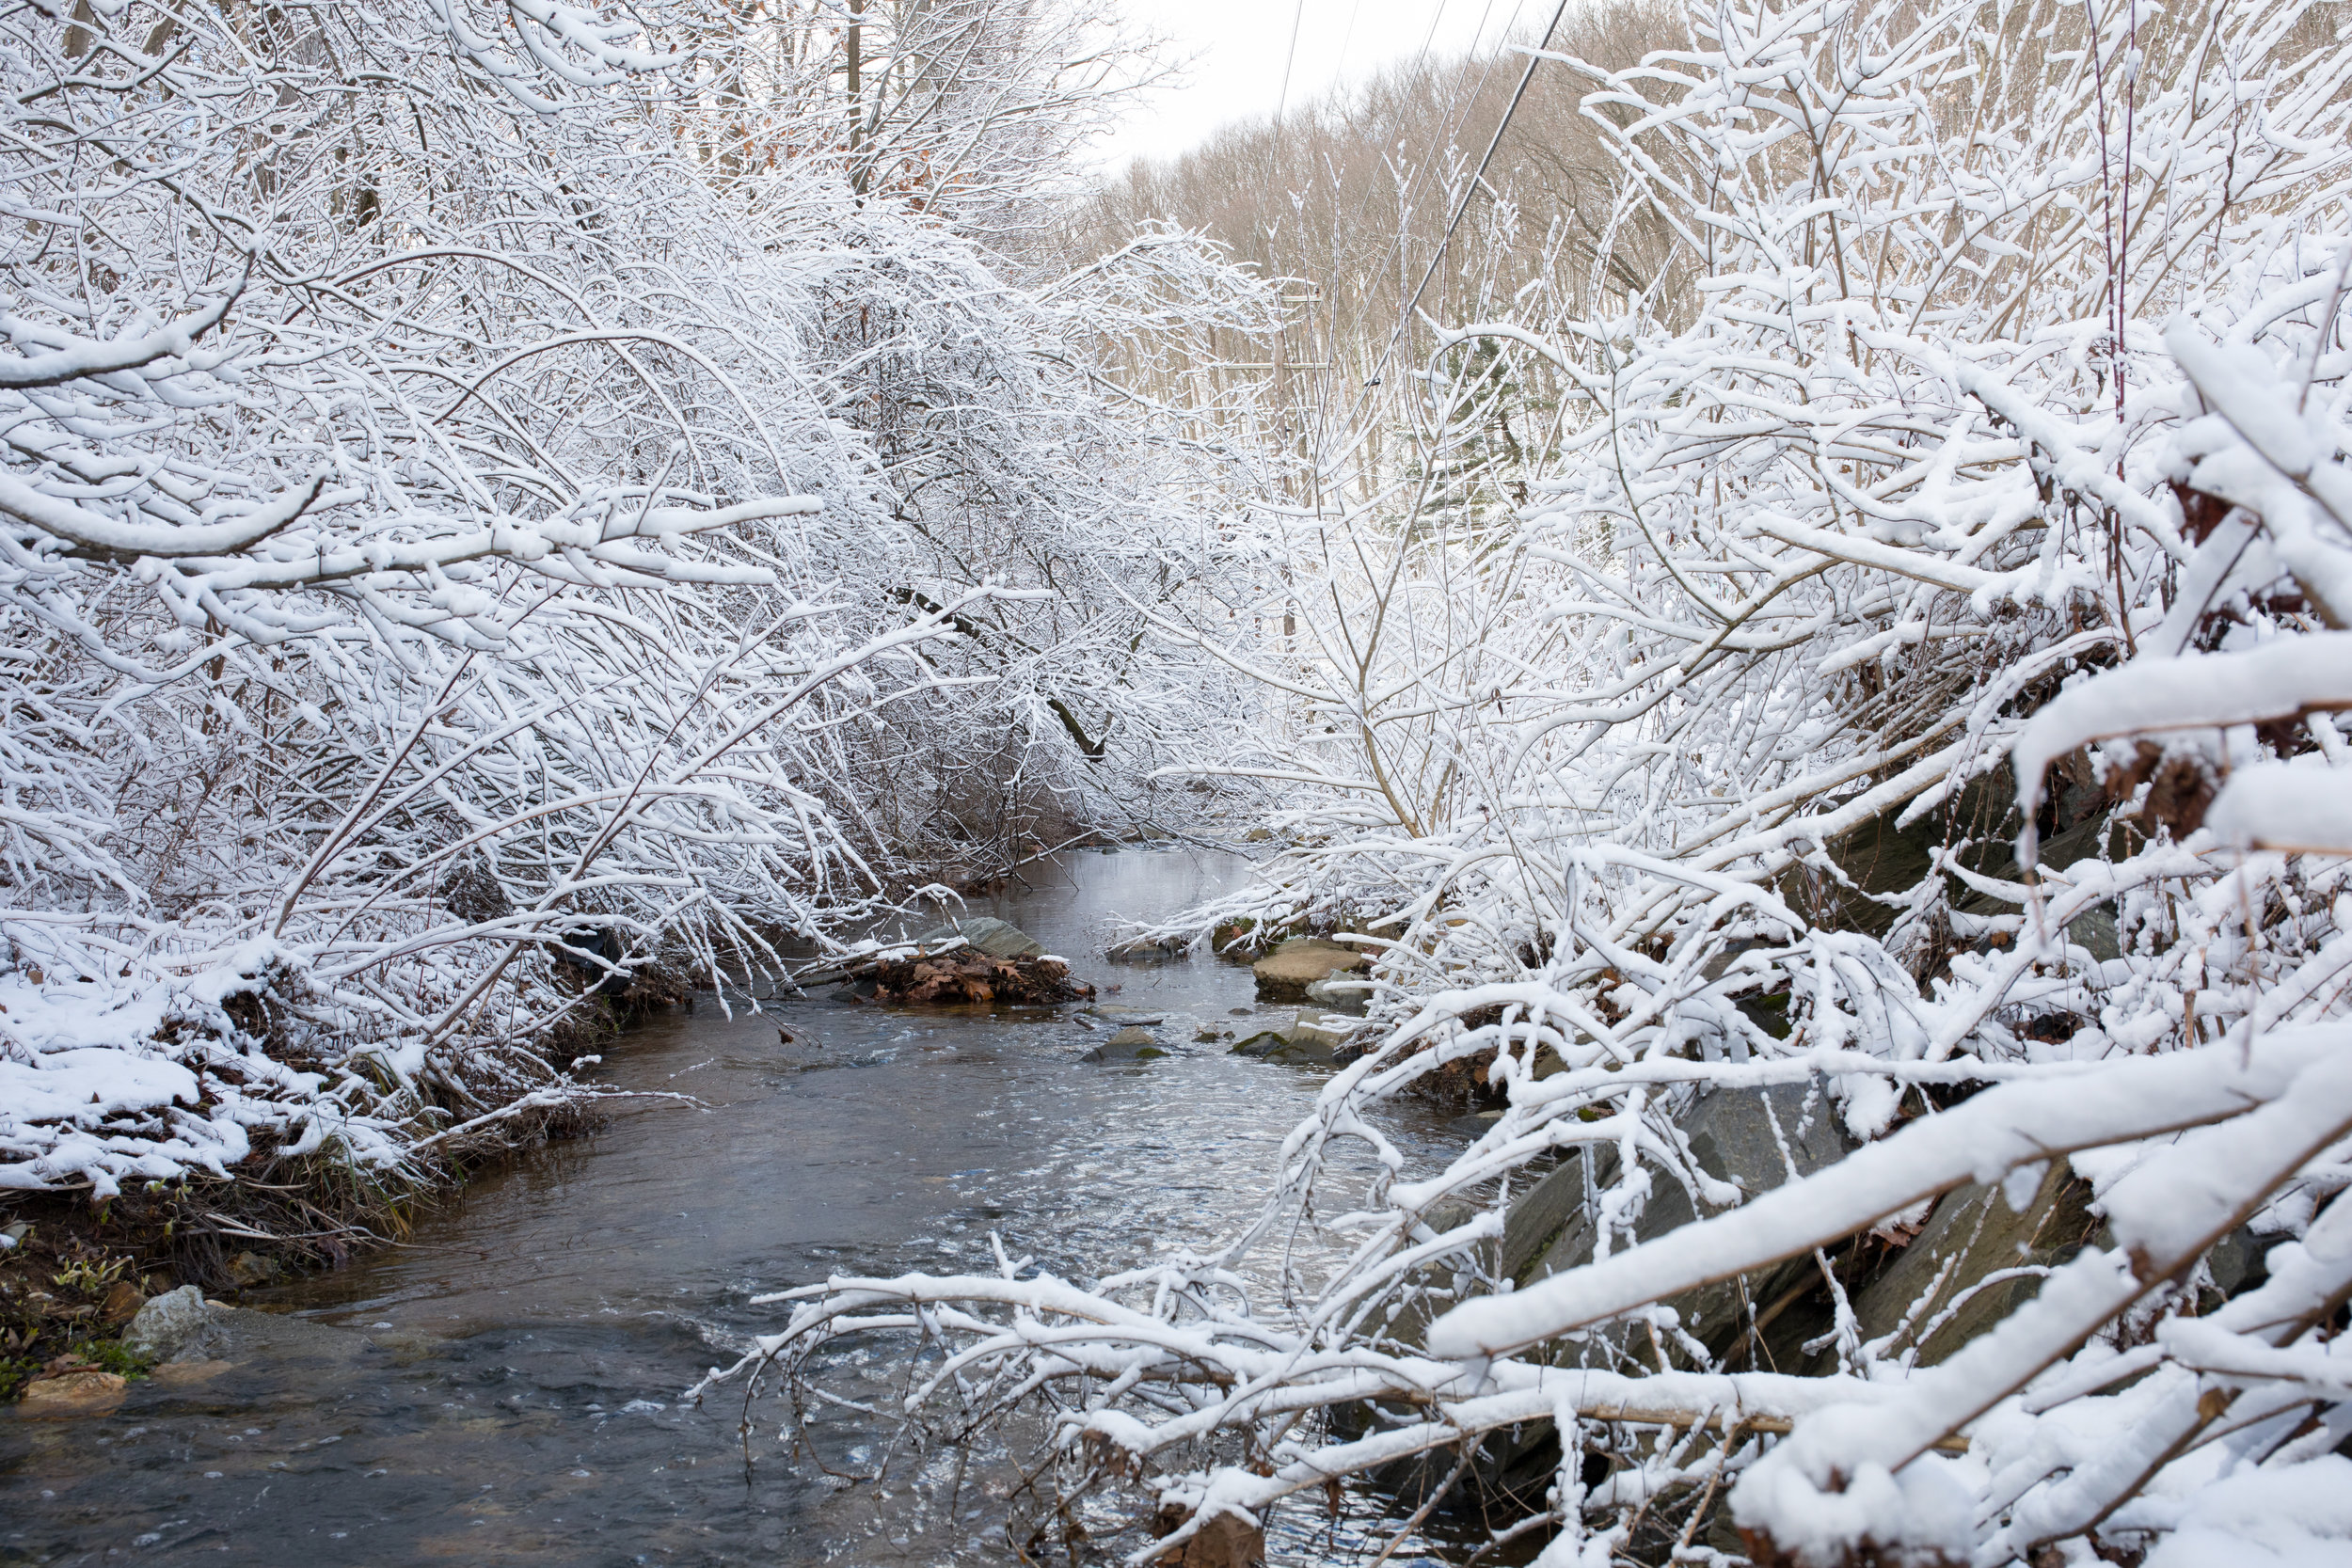 snow-creek-winter-Mill-Creek-York-Pennsylvania-PA-Photography